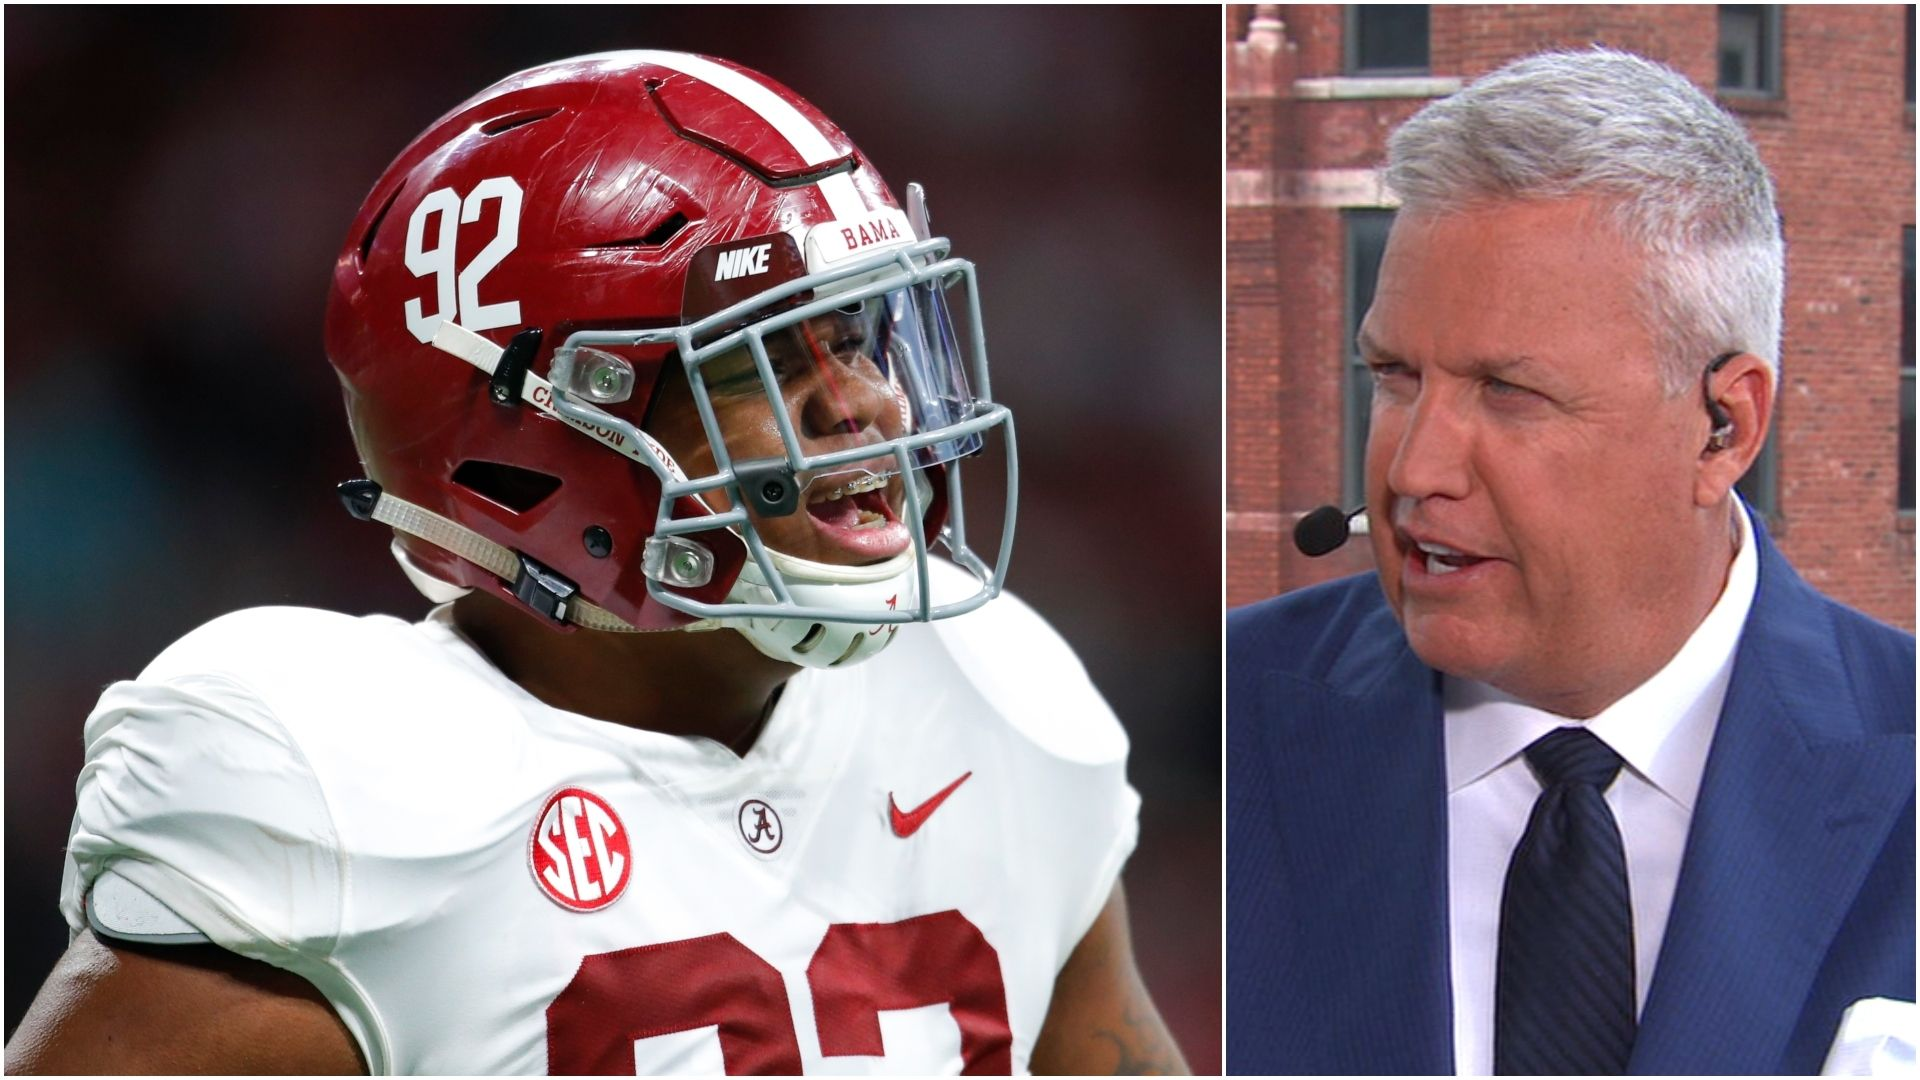 Ryan considers Quinnen Williams as the top player in the draft